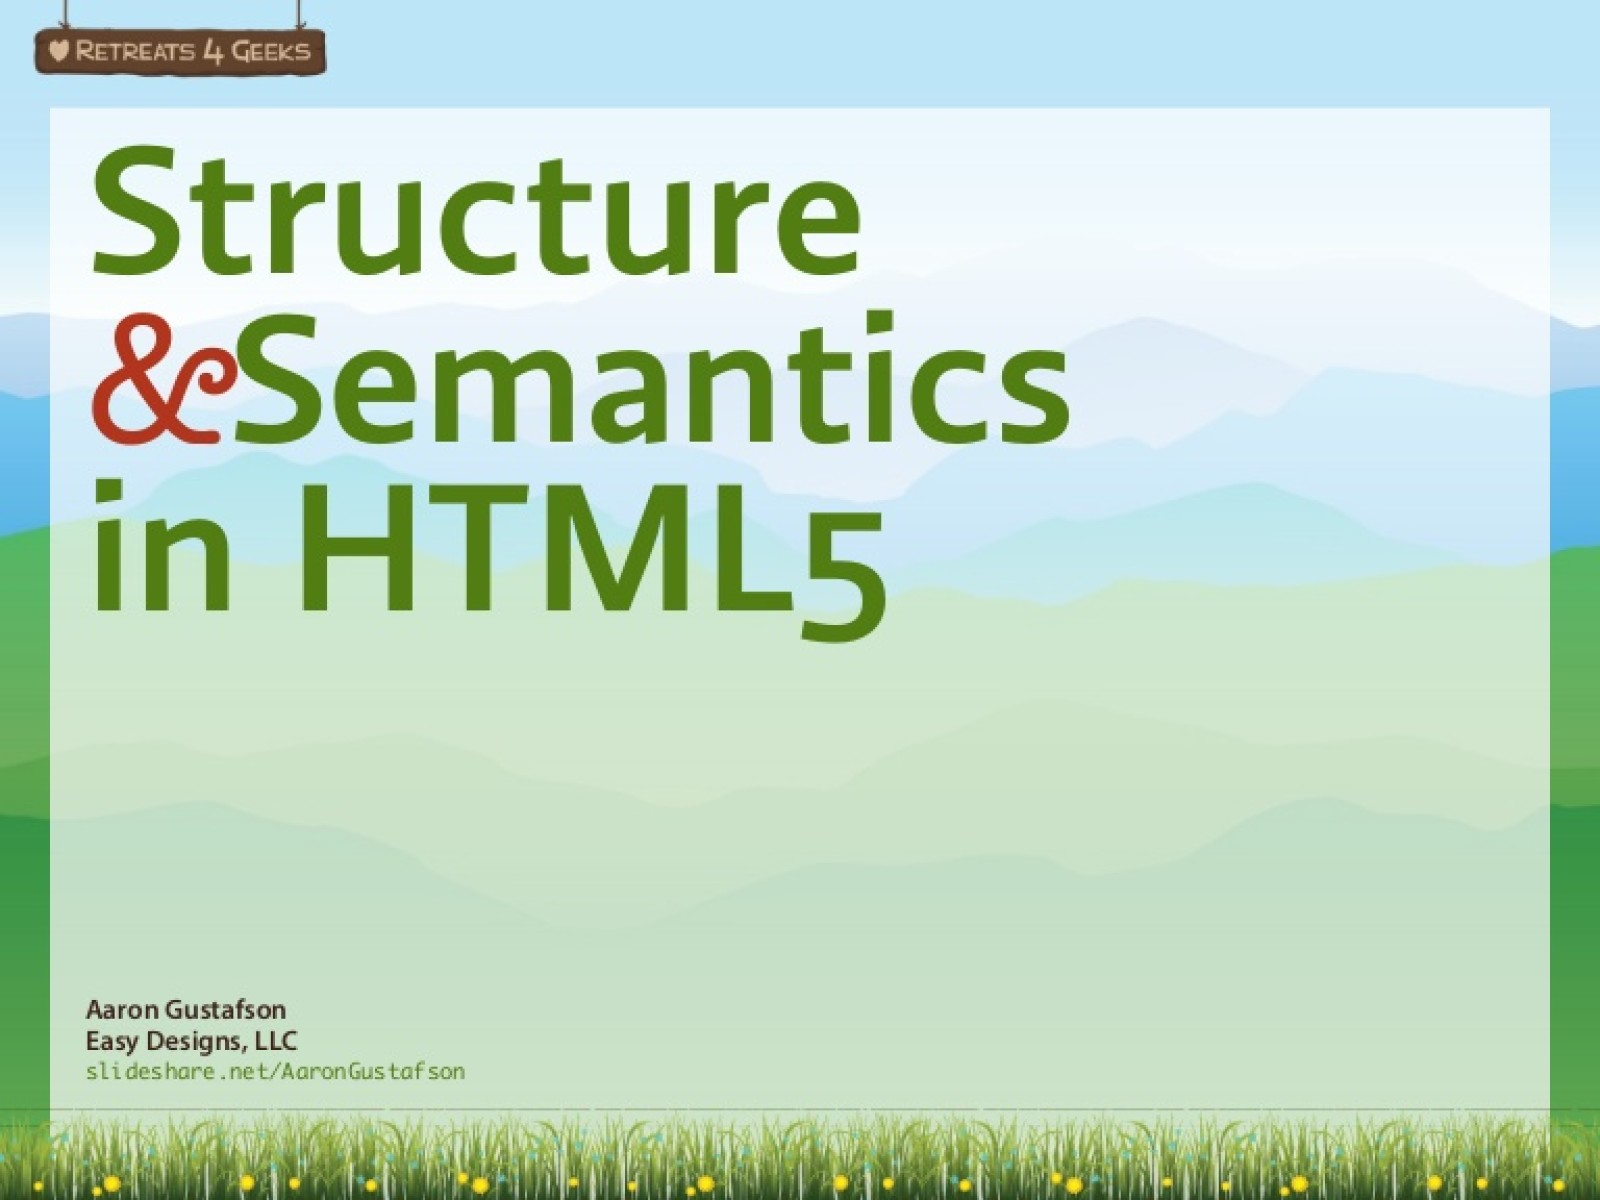 Structure & Semantics in HTML5 [Workshop]